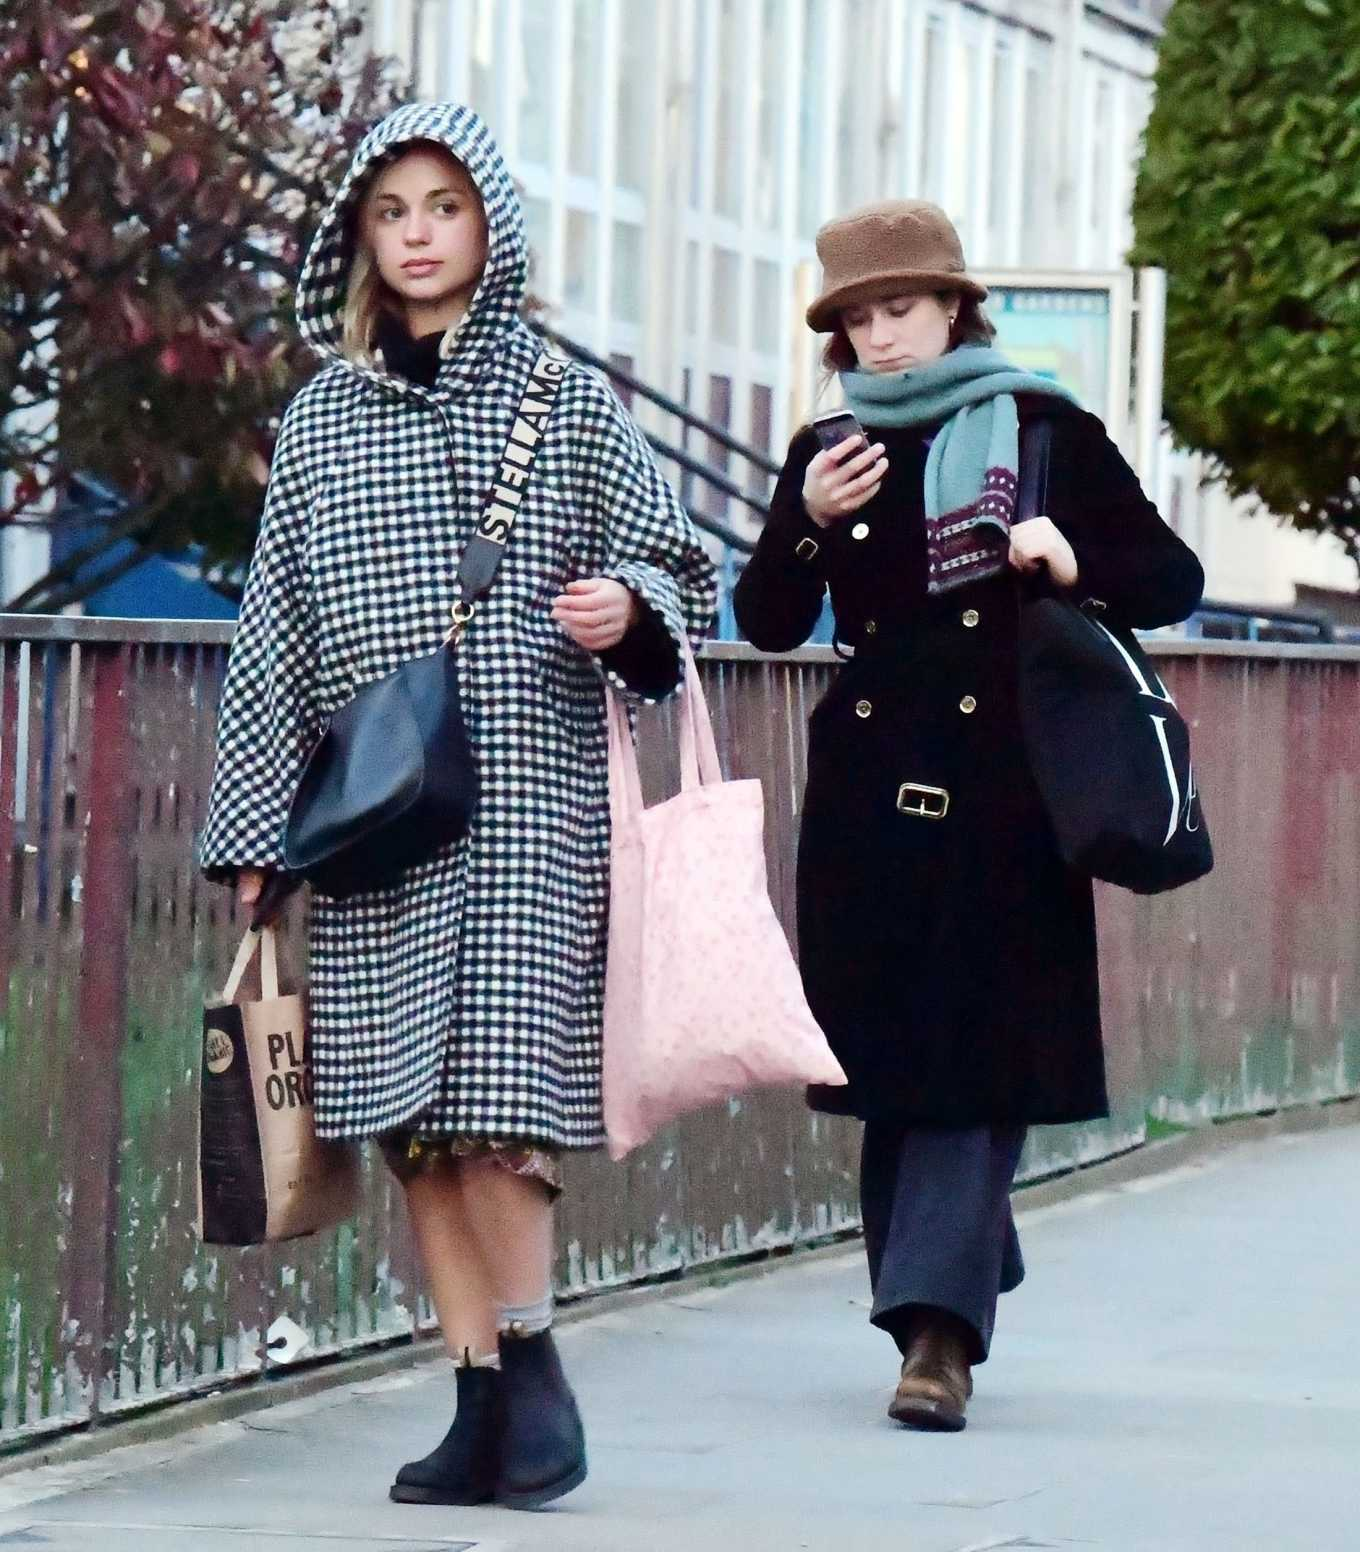 Amelia Windsor 2020 : Amelia Windsor – Looks stylis while out in the trendy area of Notting Hill-11